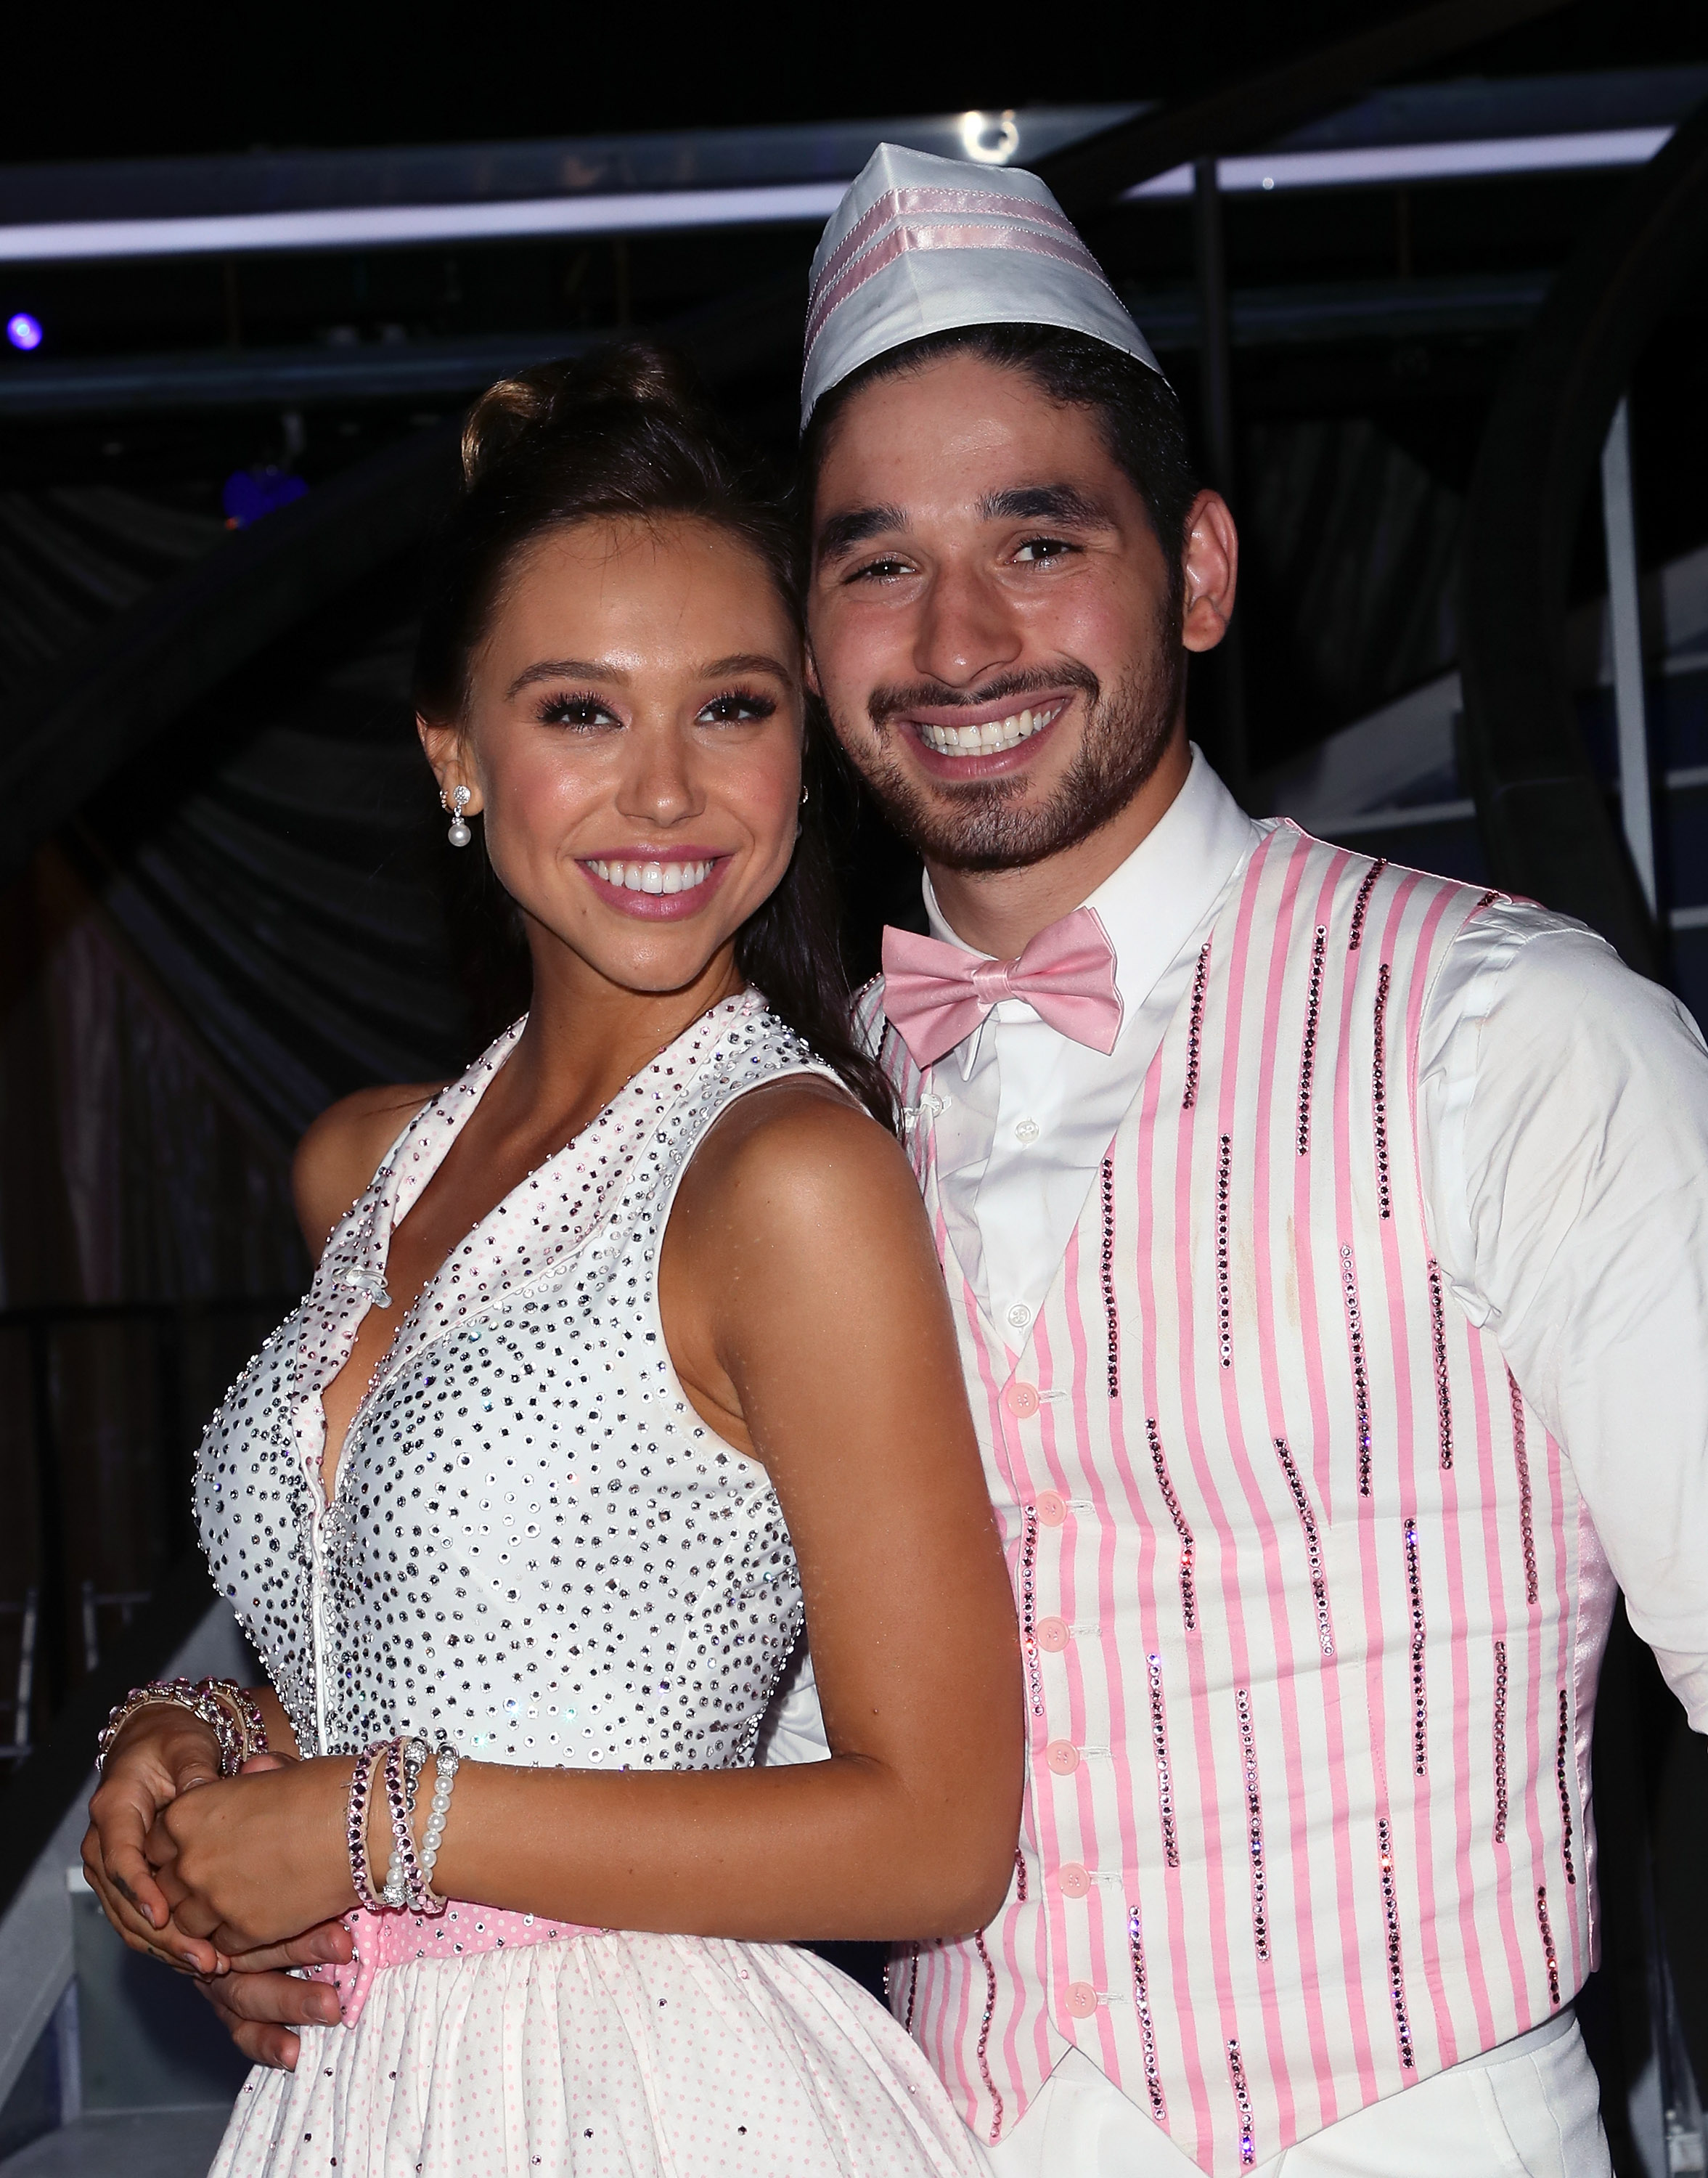 Alexis Ren (L) and Alan Bersten pose at 'Dancing with the Stars' Season 27 at CBS Televison City on September 24, 2018 in Los Angeles, California.